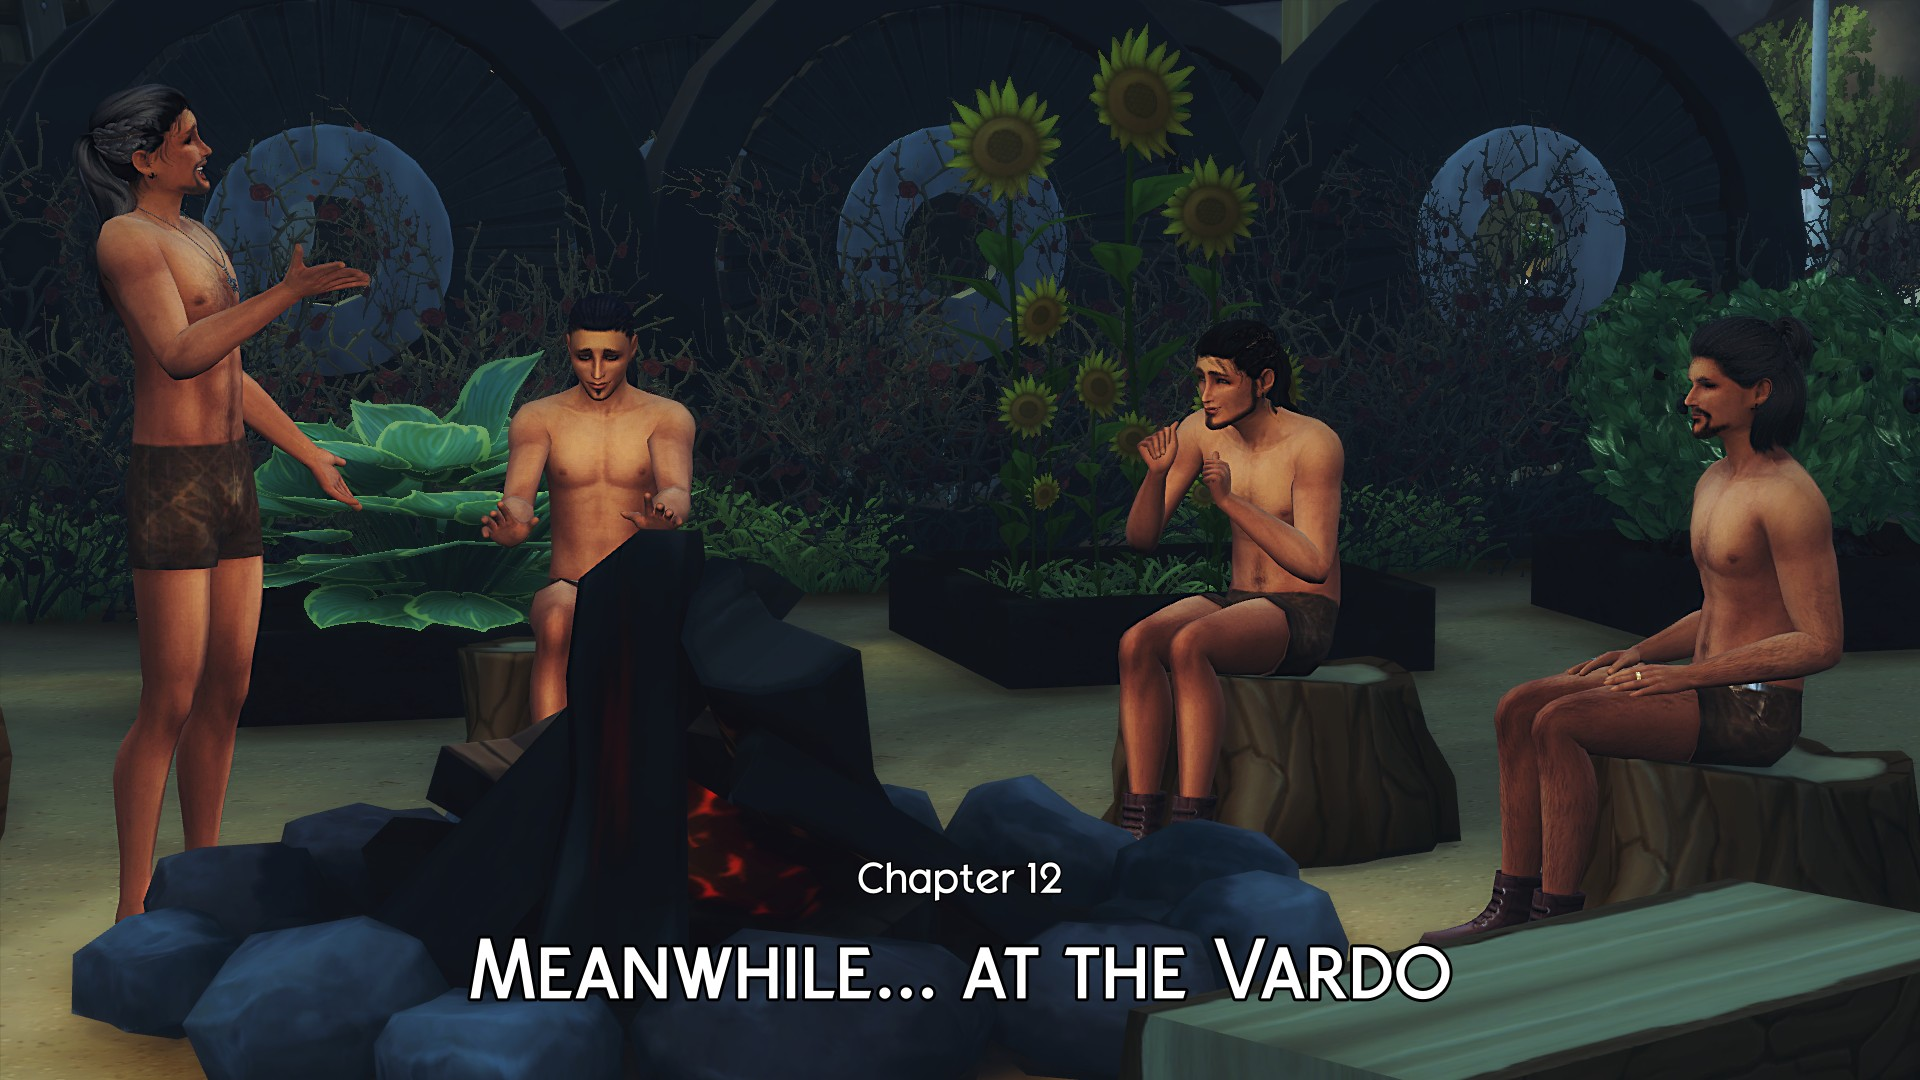 at the vardo title 2020